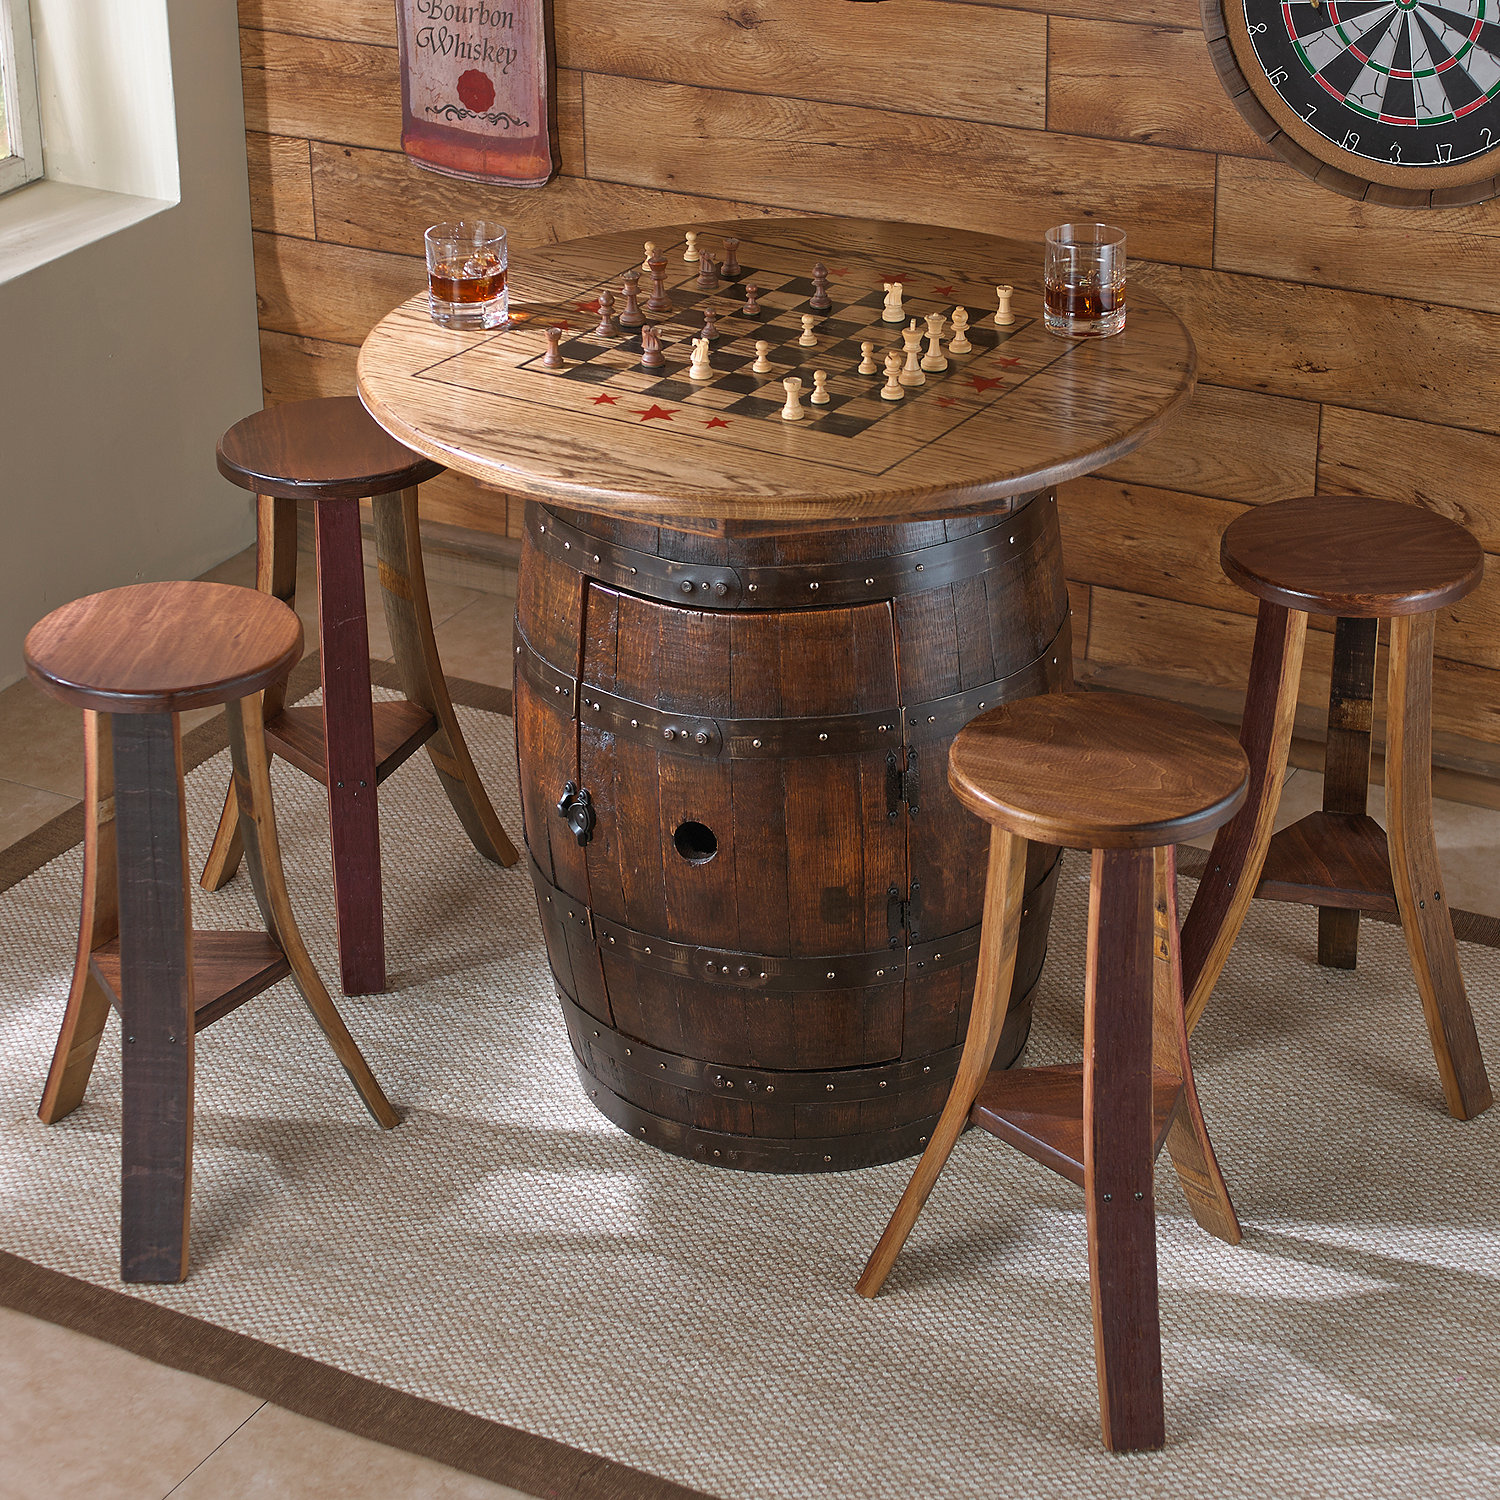 ... Barrel Game Table with 4 Stools. Preparing Zoom : wine barrel table and stools - islam-shia.org